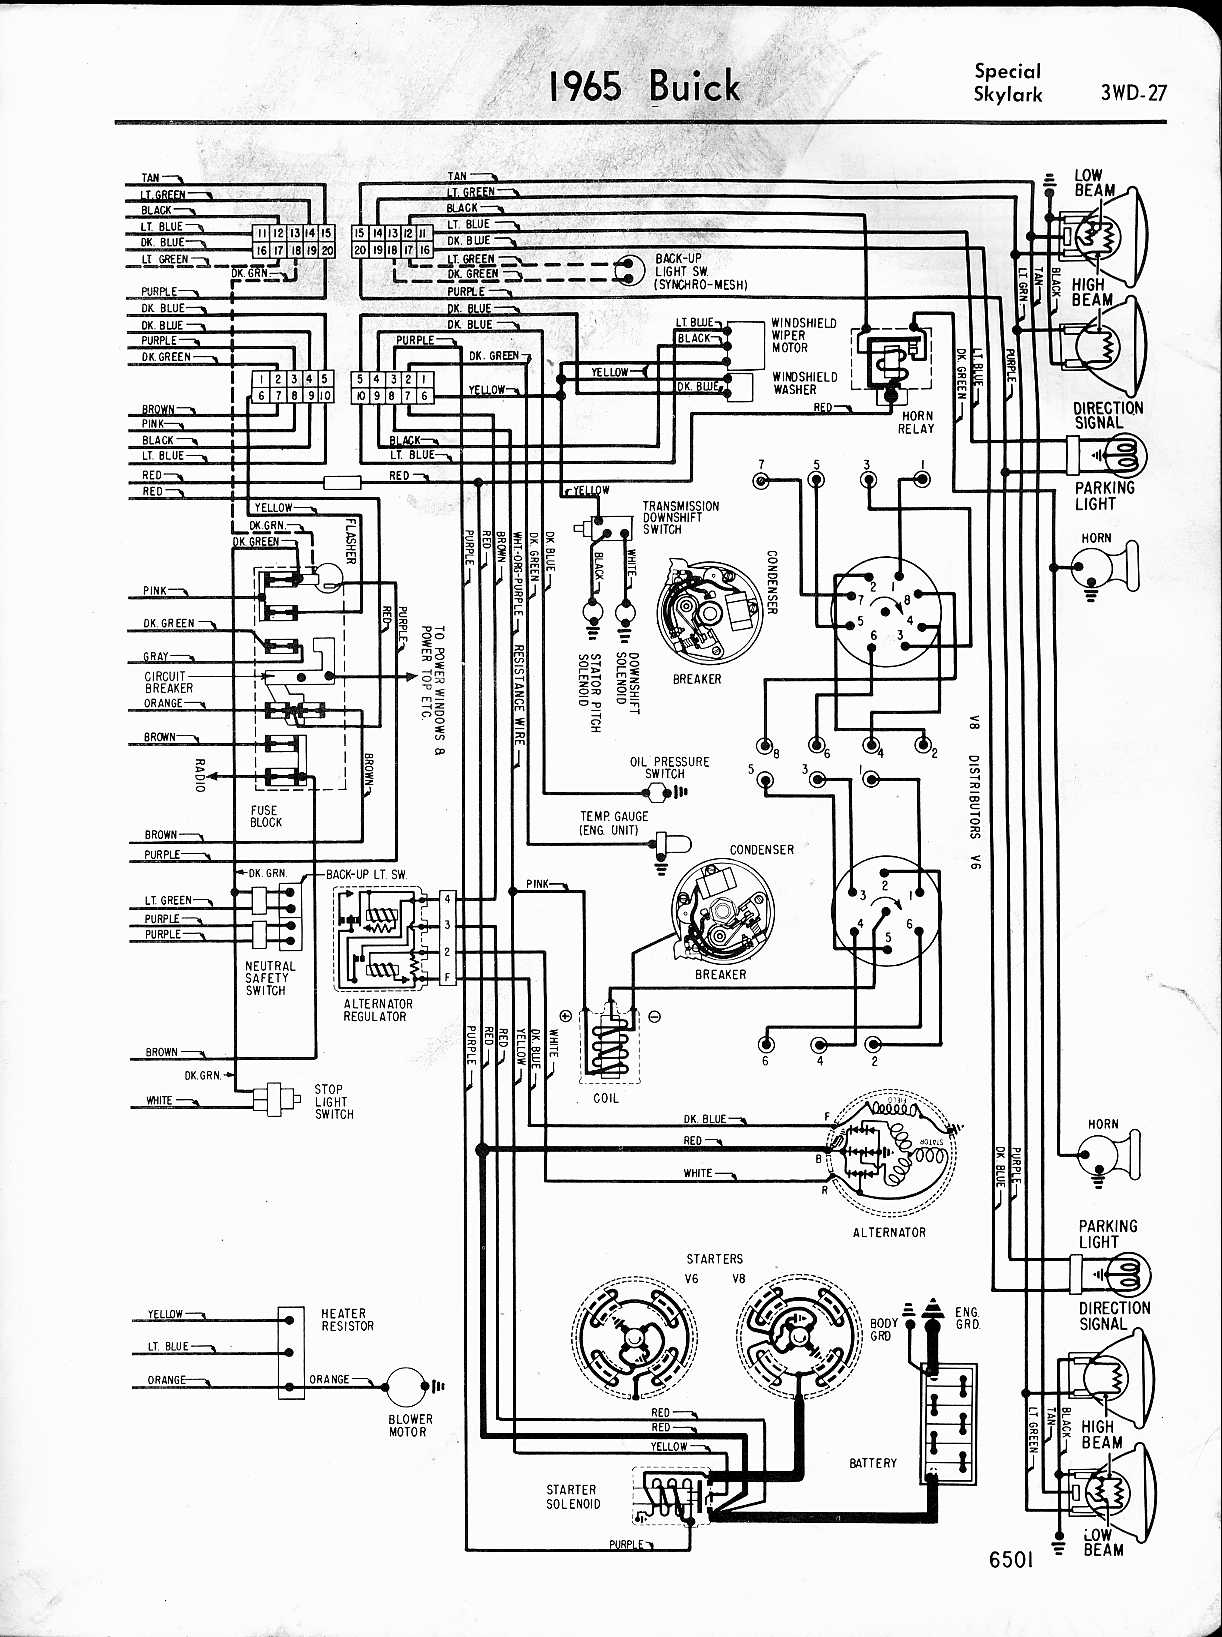 Buick Wiring Diagrams 1957 1965 1964 5 Mustang Diagram Dash Special Skylark Right Half